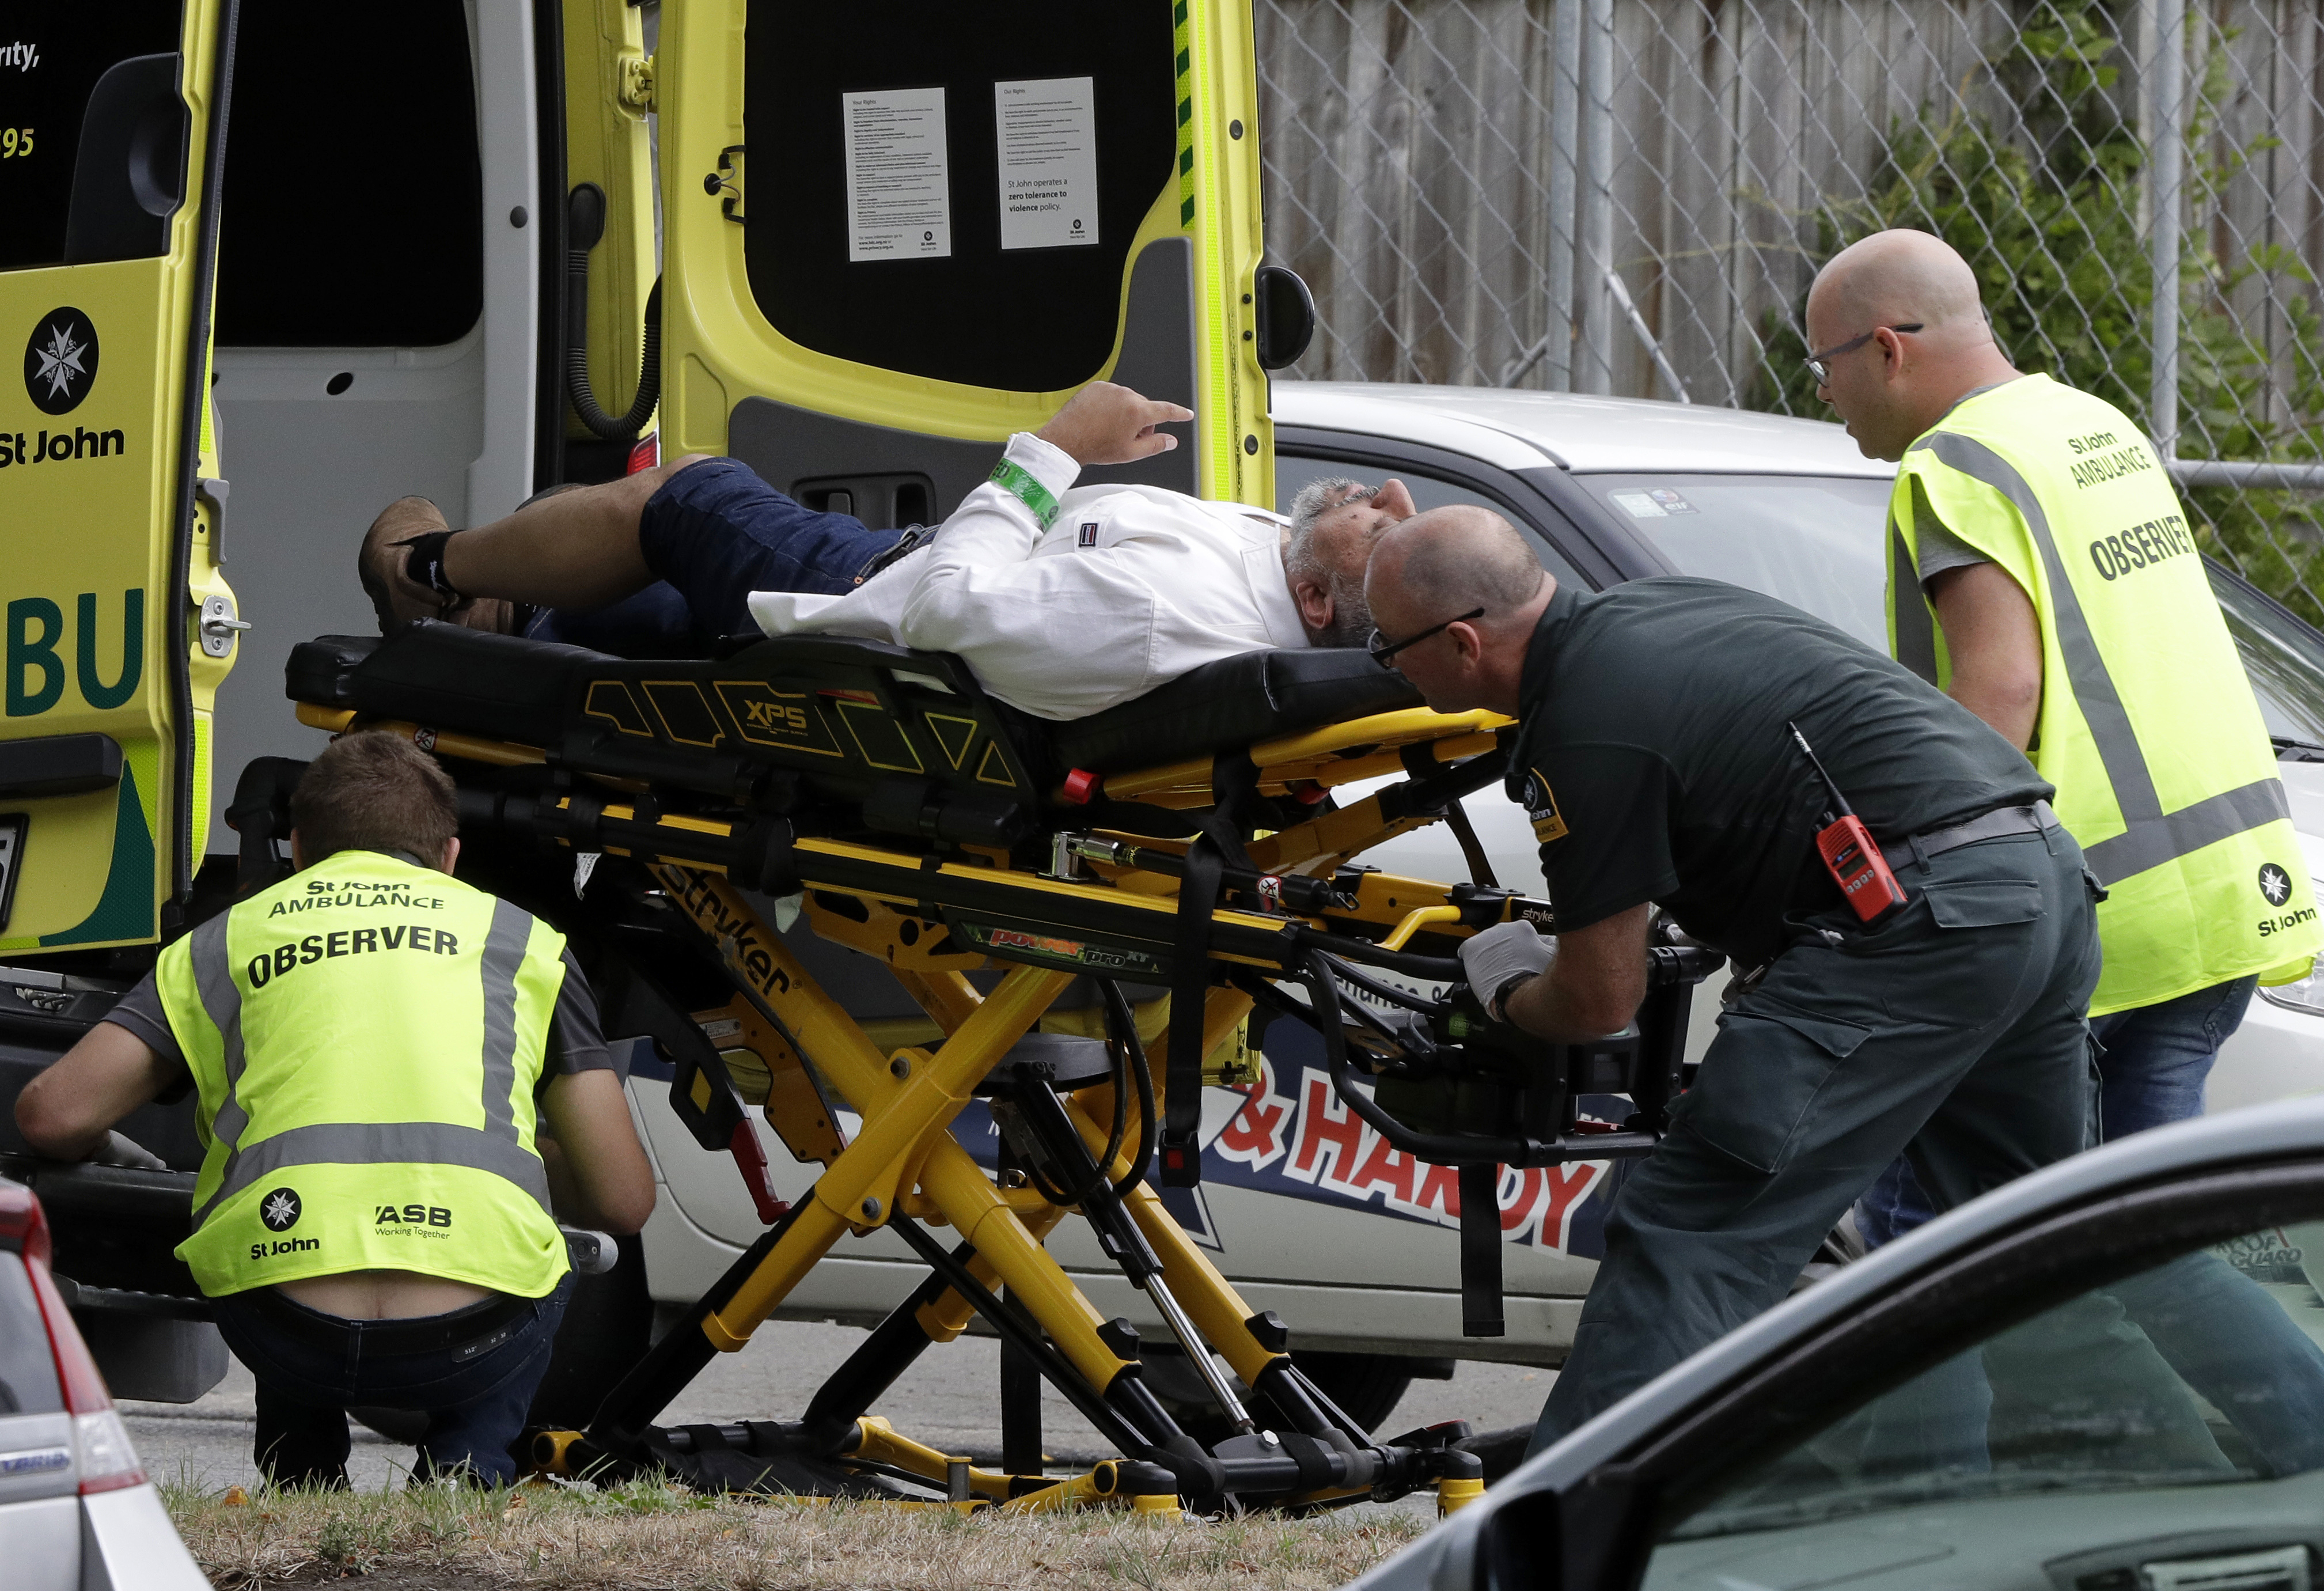 Nz Mosque Shooting Video Wikipedia: Mosque Massacre In New Zealand Leaves 49 Dead; 1 Man